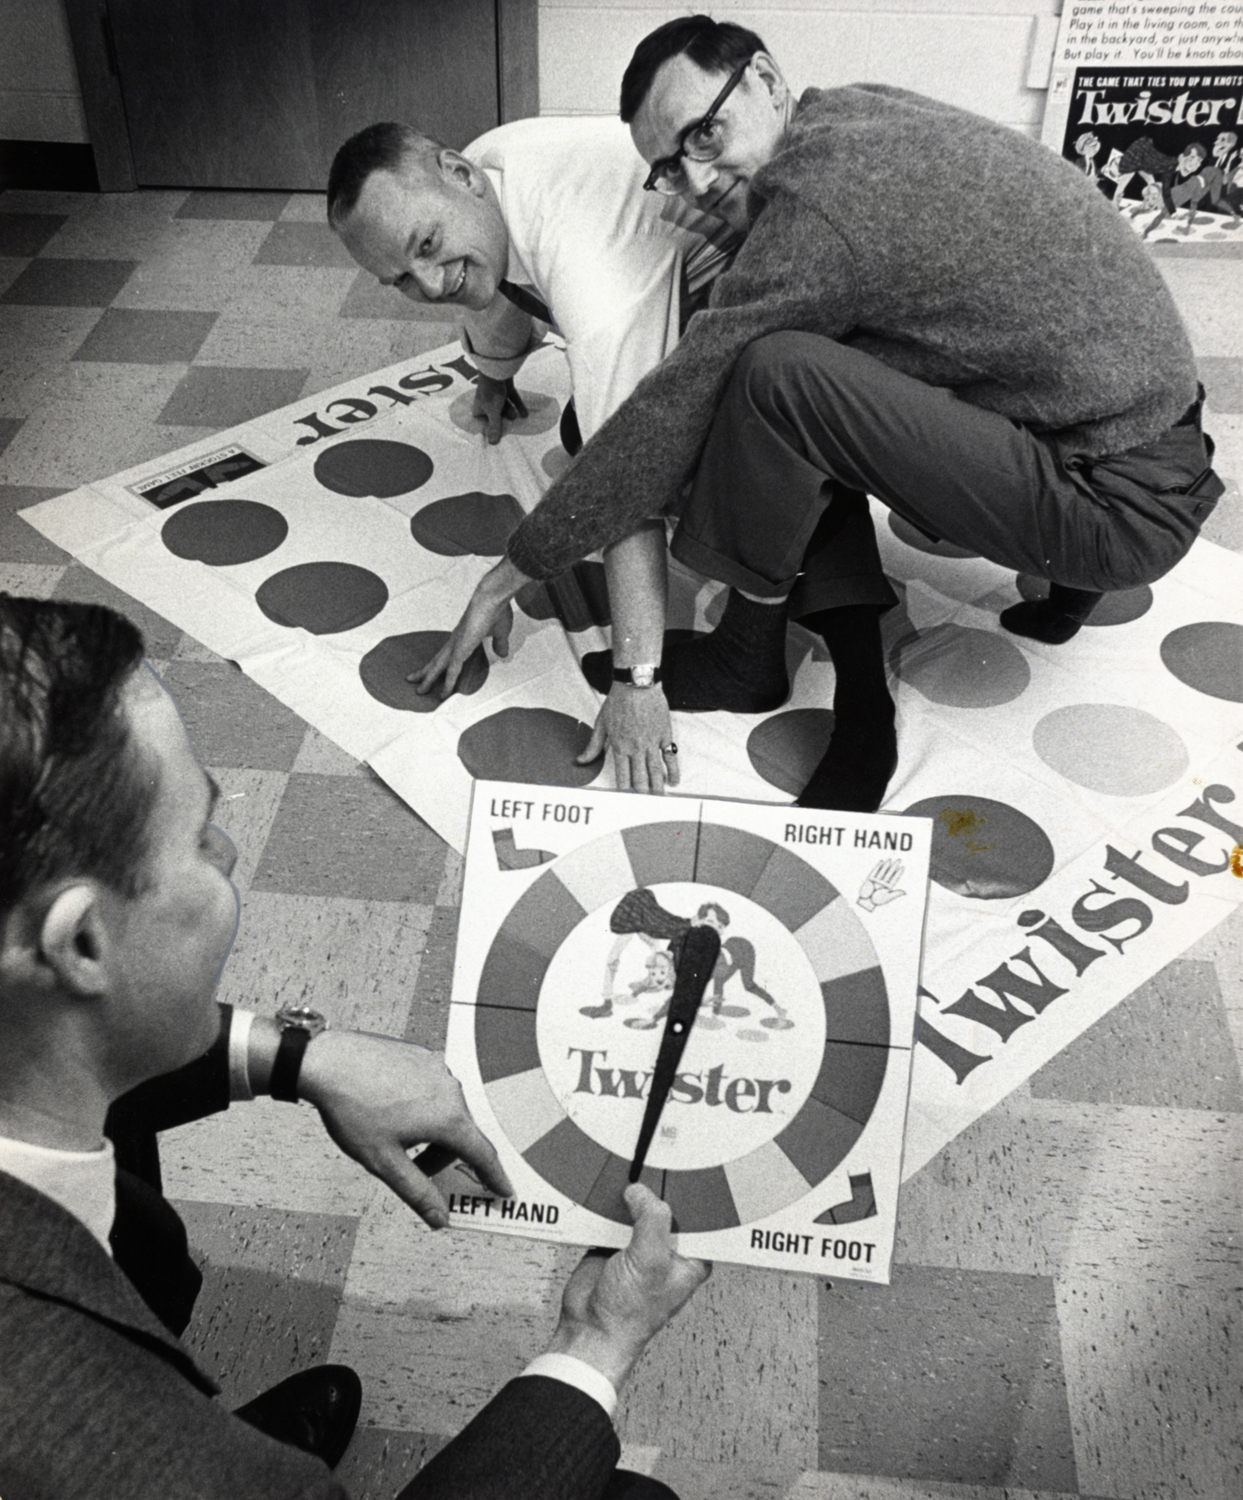 In a Dec. 16,1966 photo, co-inventors of the game